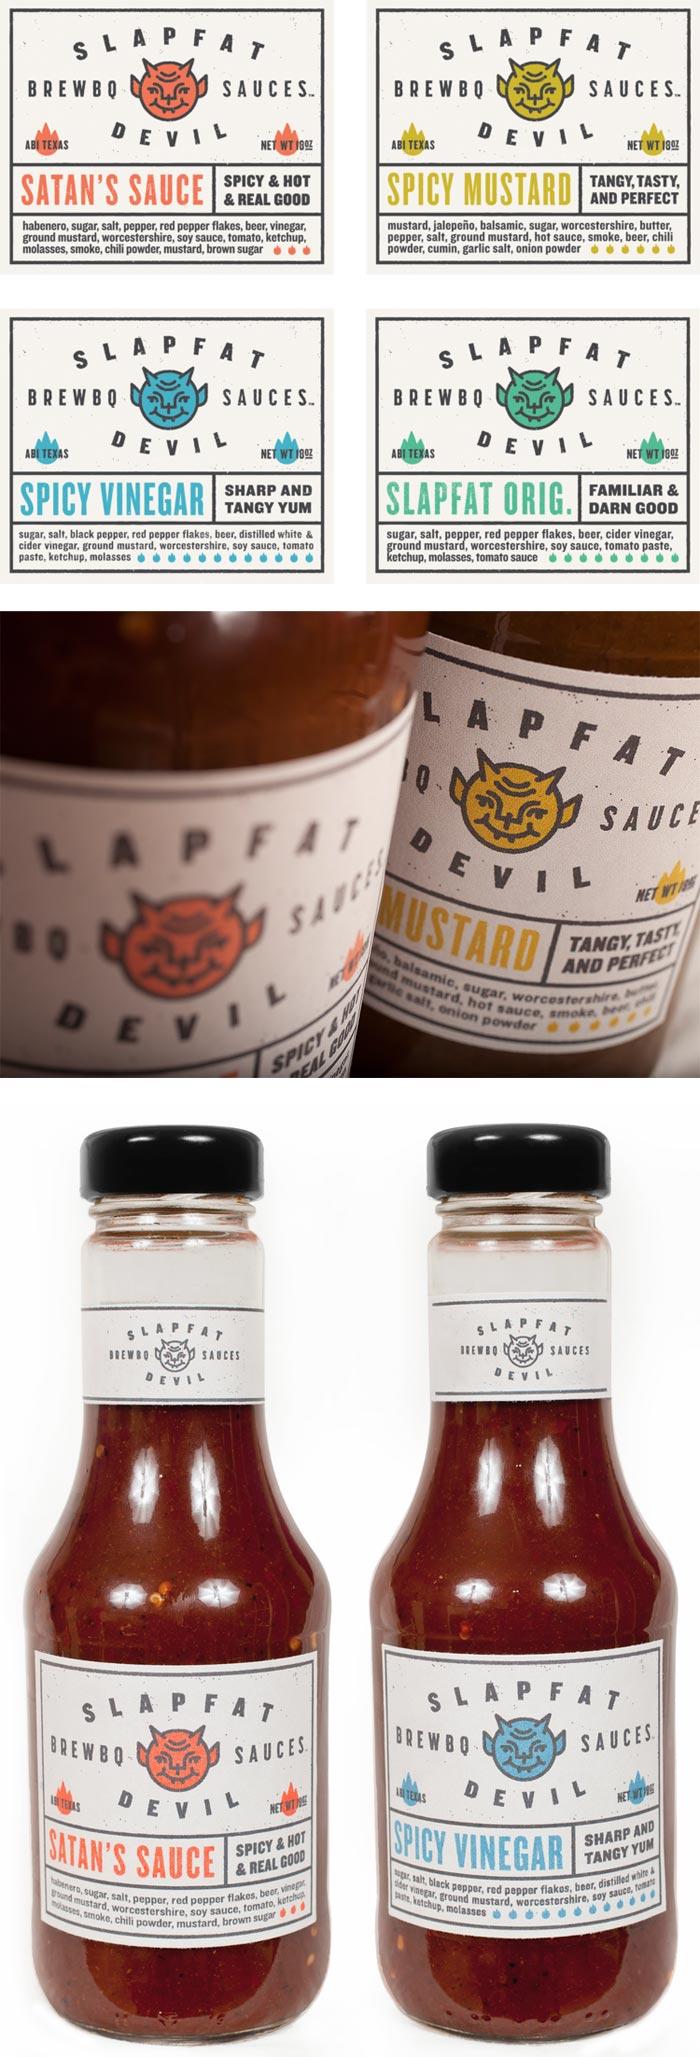 Ryan Feerer / Packaging design - Slapfat Brew-B-Q Sauce